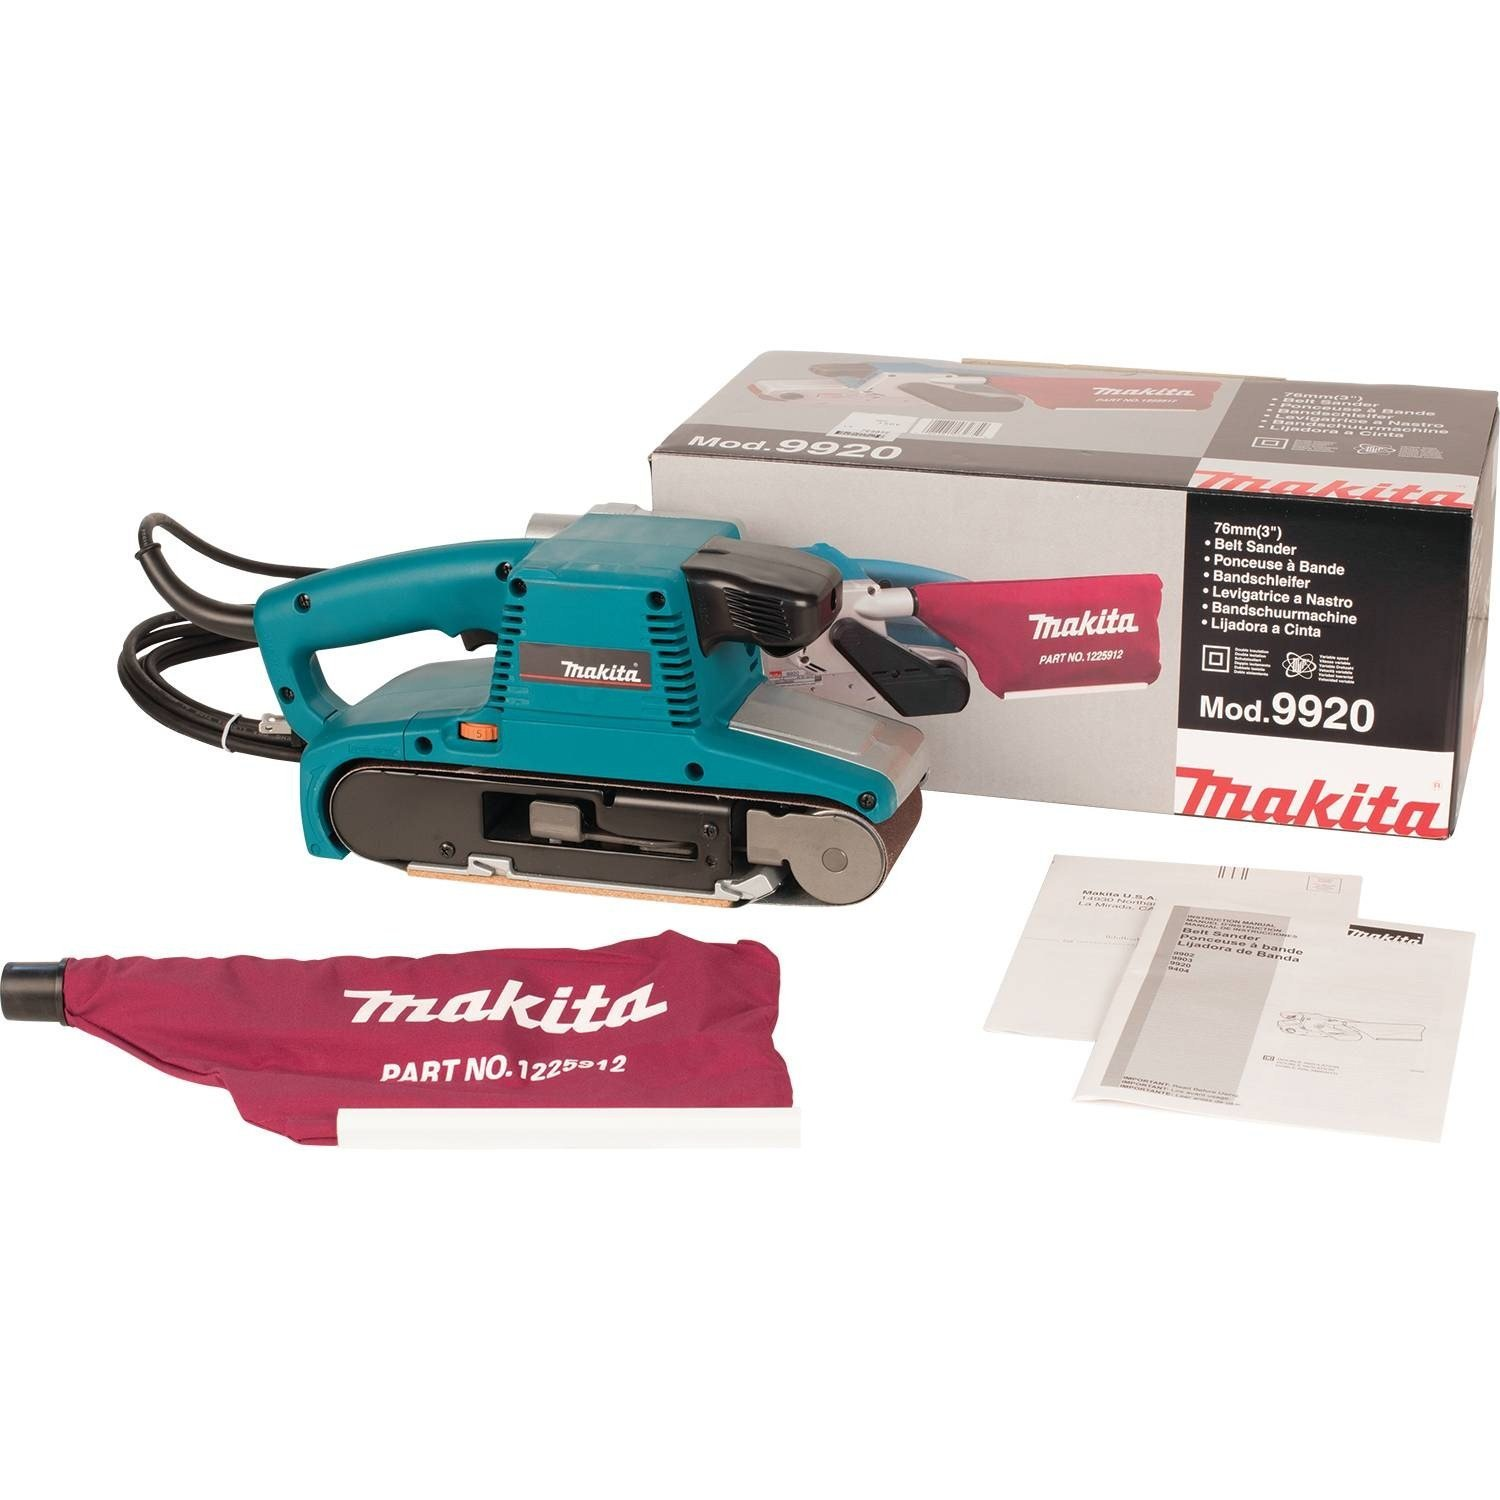 Makita 9920 Belt Sanders product image 7